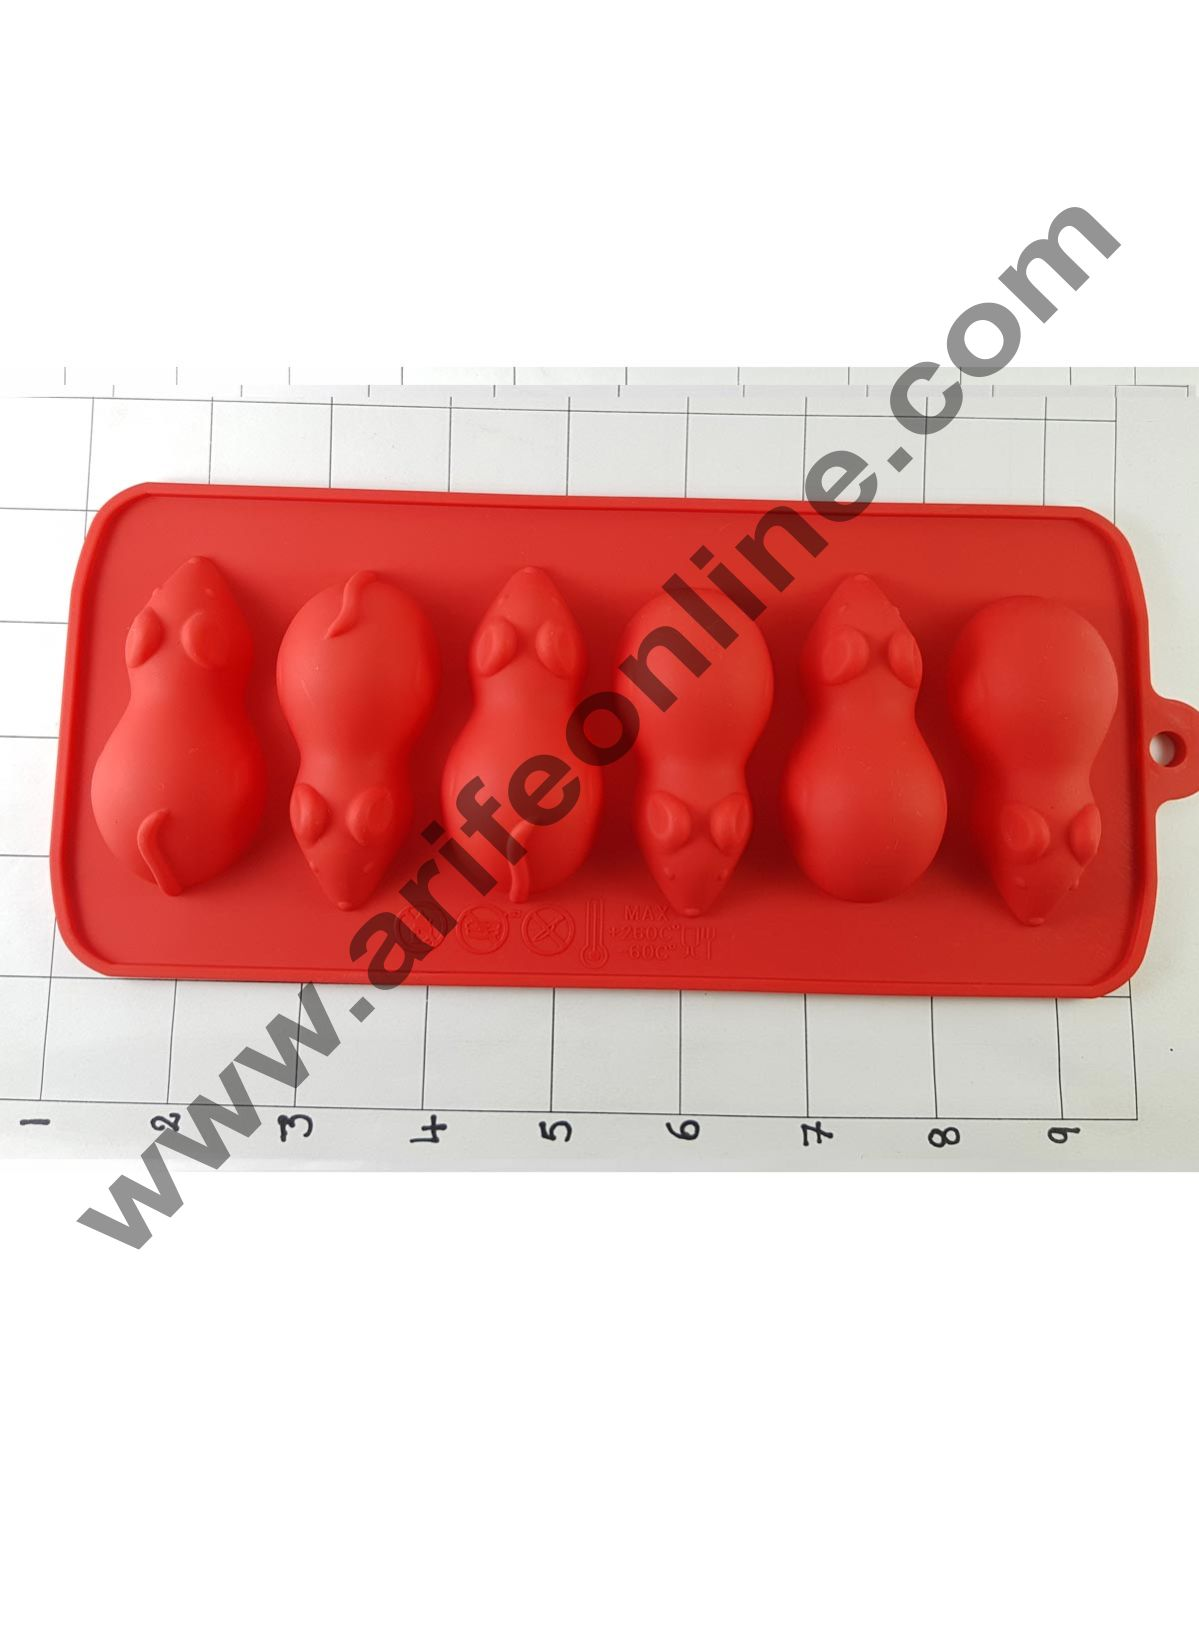 Cake Decor Silicon 6 Cavity Rat Shape Design Brown Chocolate Mould, Ice Mould, Chocolate Decorating Mould